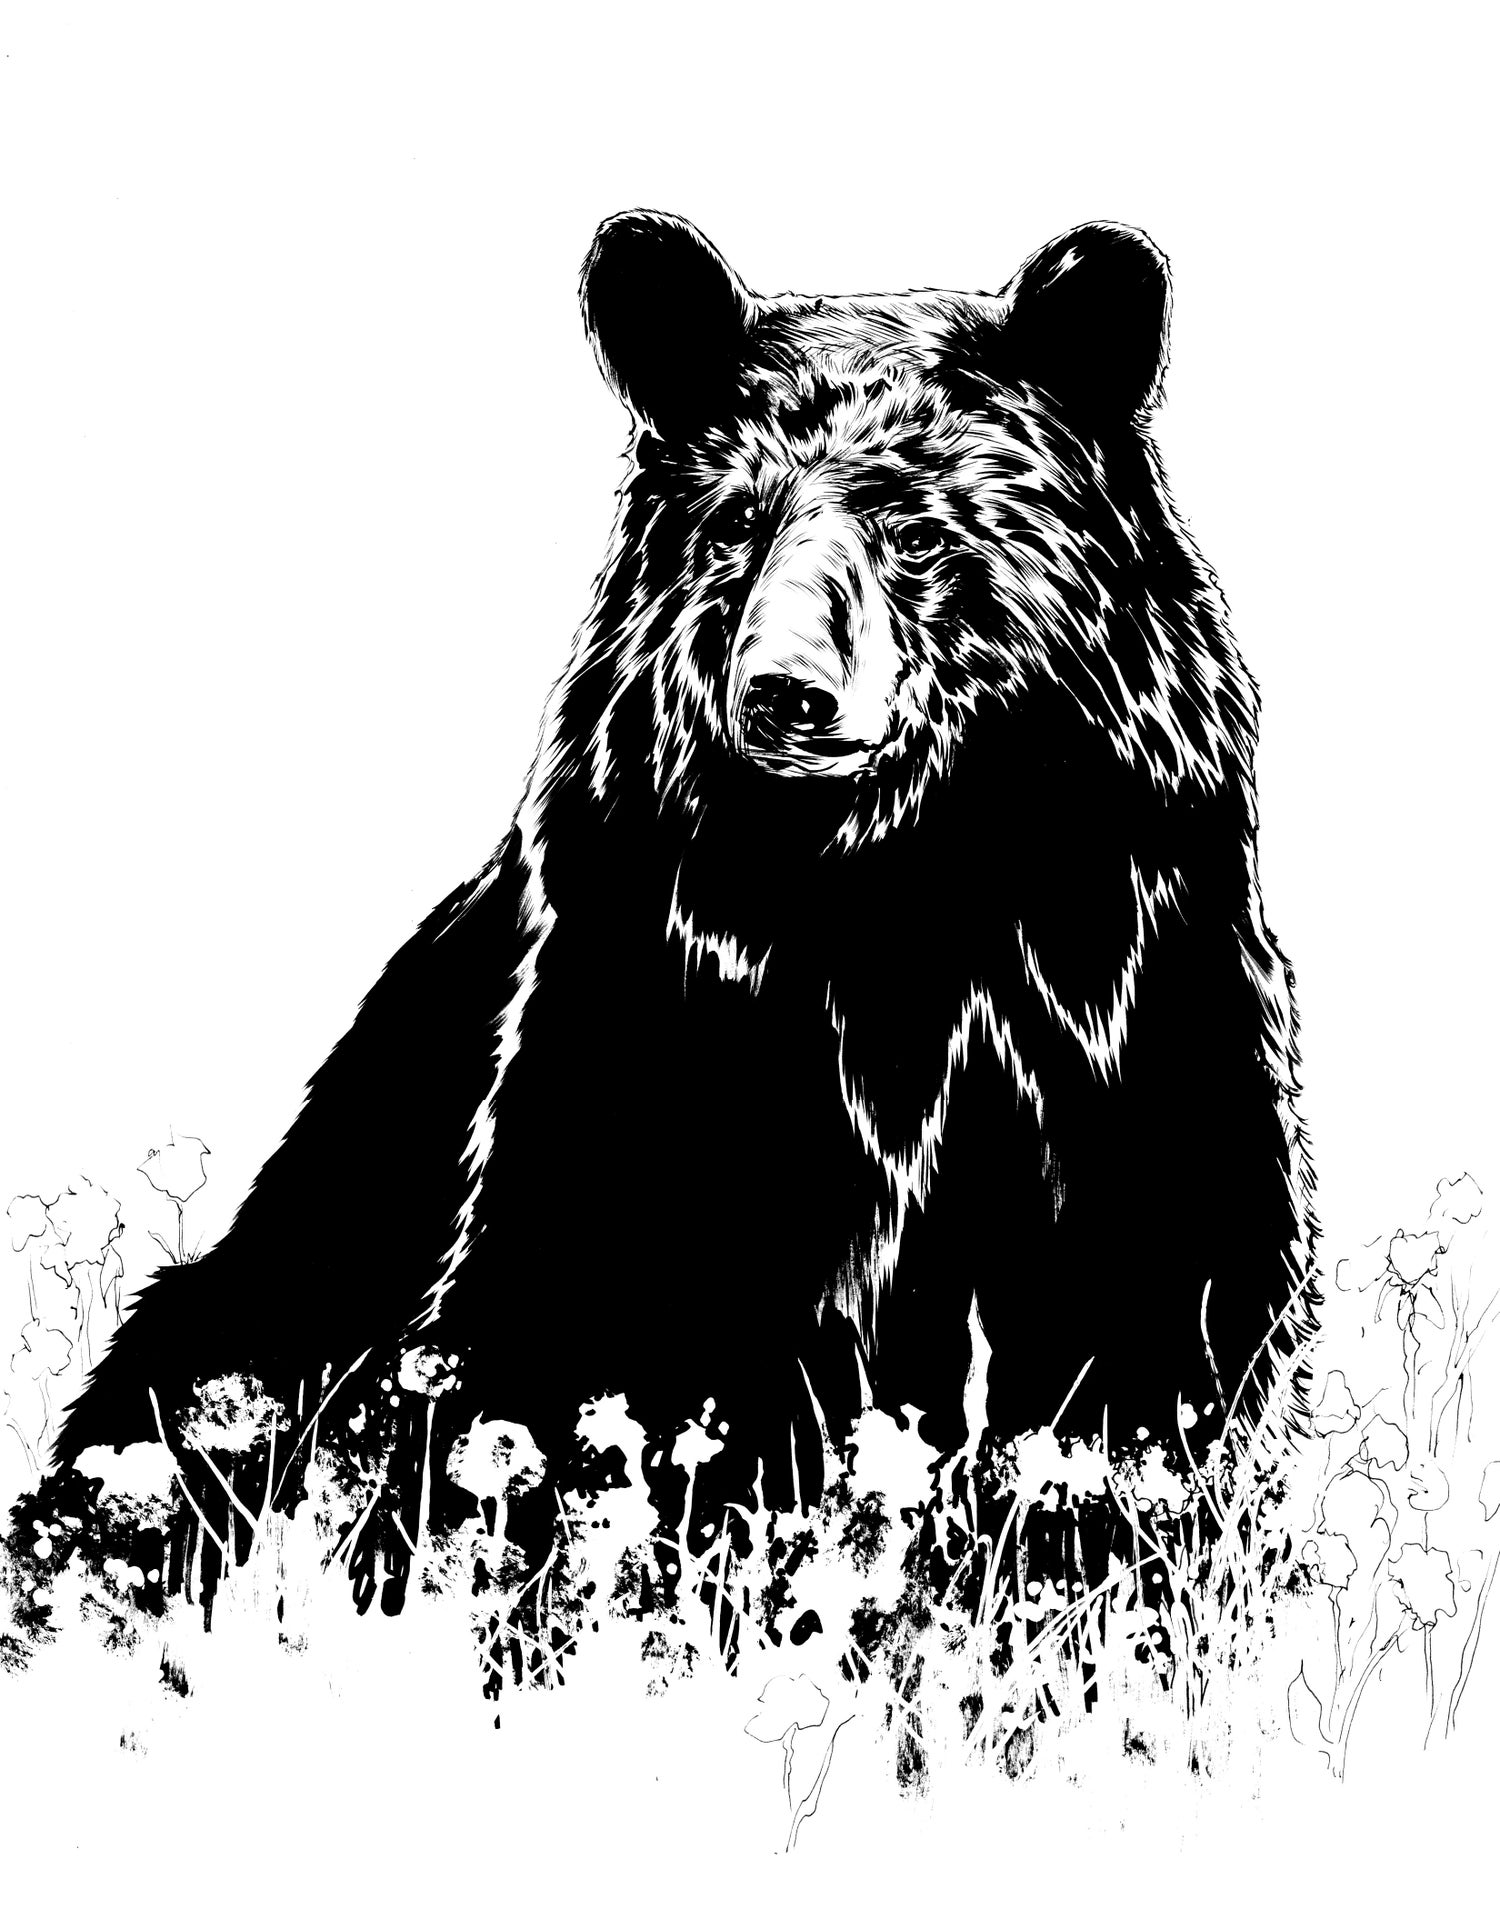 Image of bear inked production piece 11x14inches